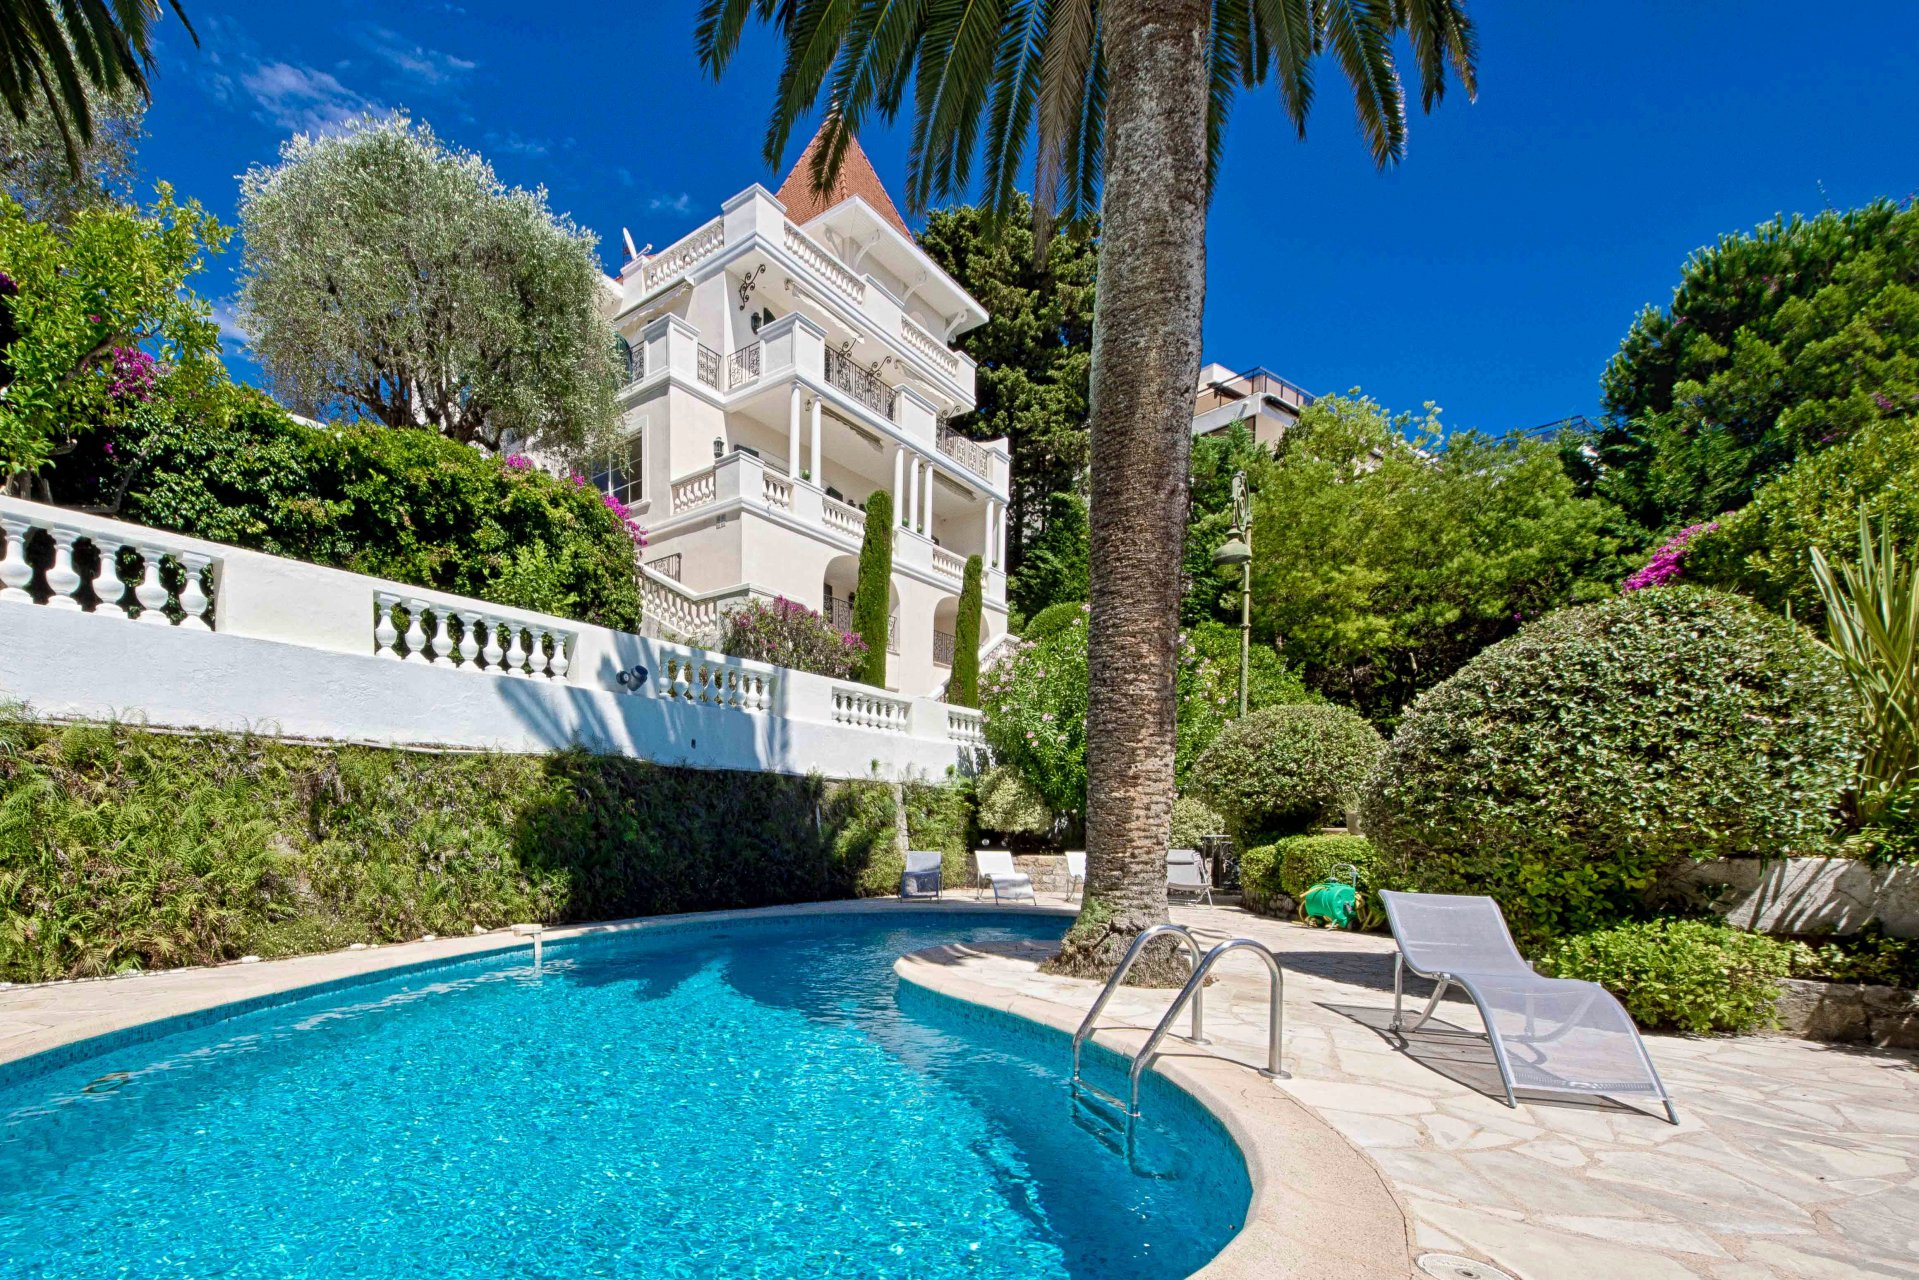 CANNES CALIFORNIE - ATYPICAL MANSION 400 M²